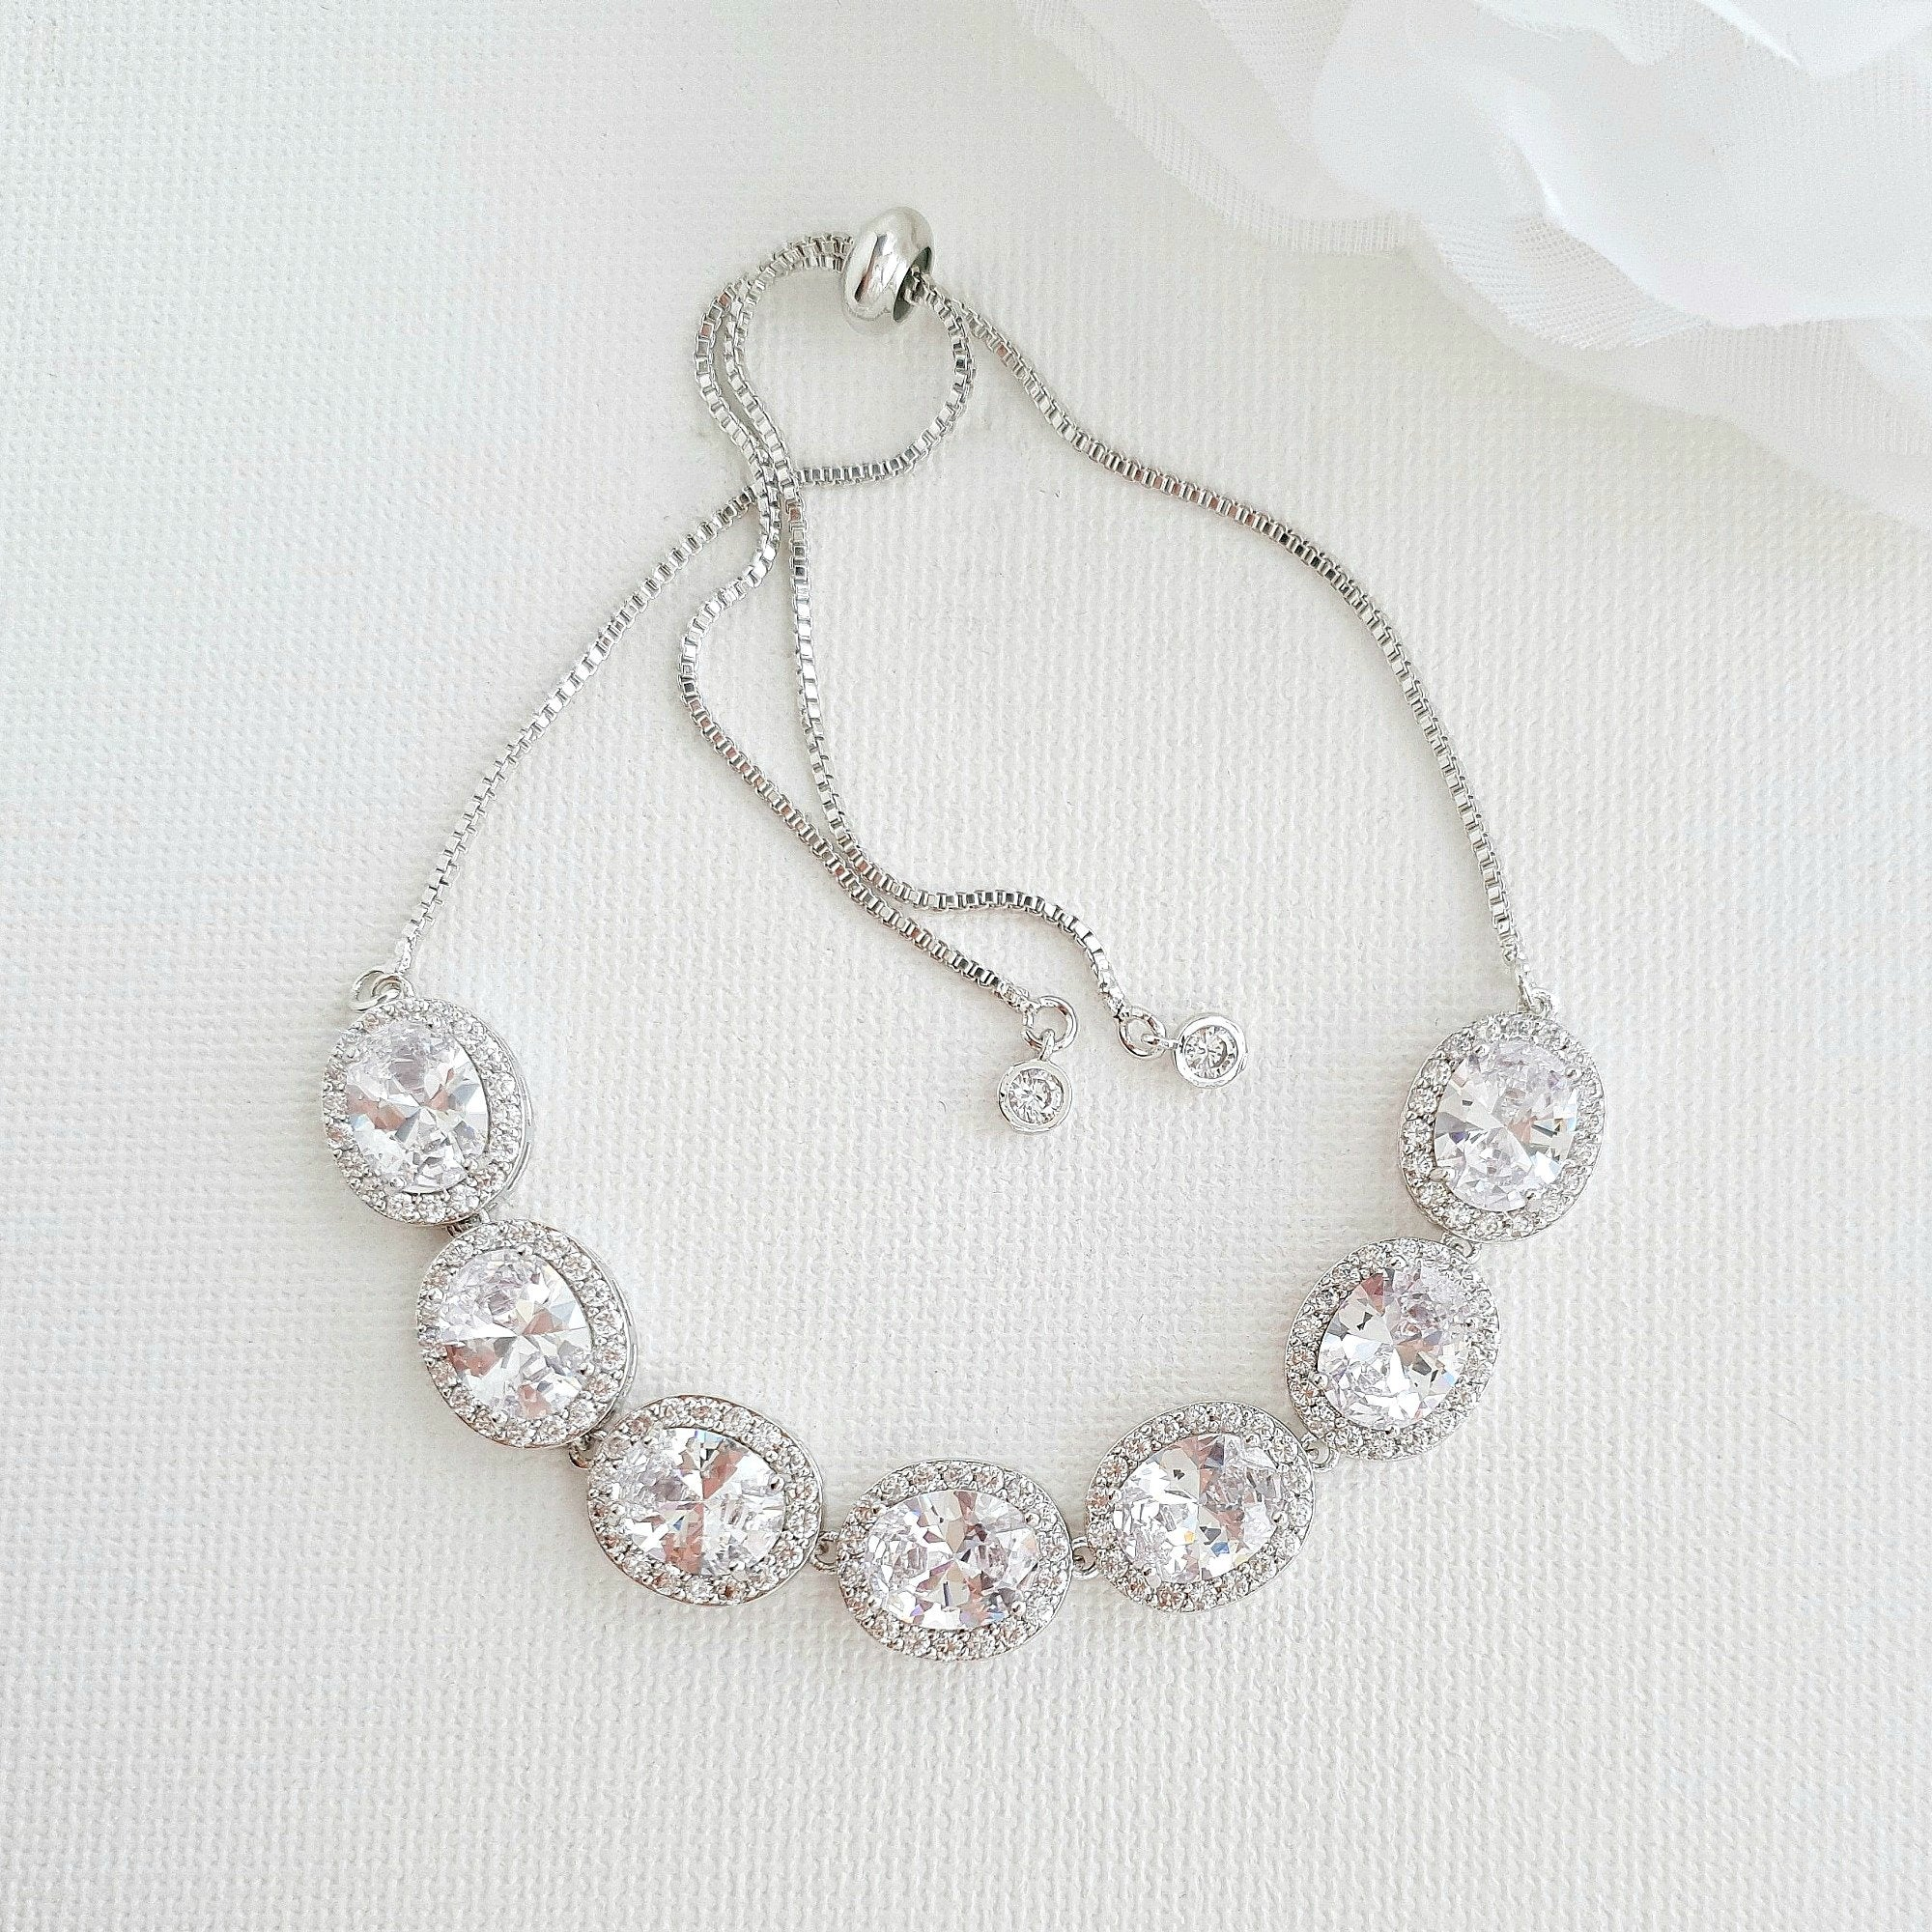 Silver and Crystal Bracelet for Weddings- Emily - PoetryDesigns